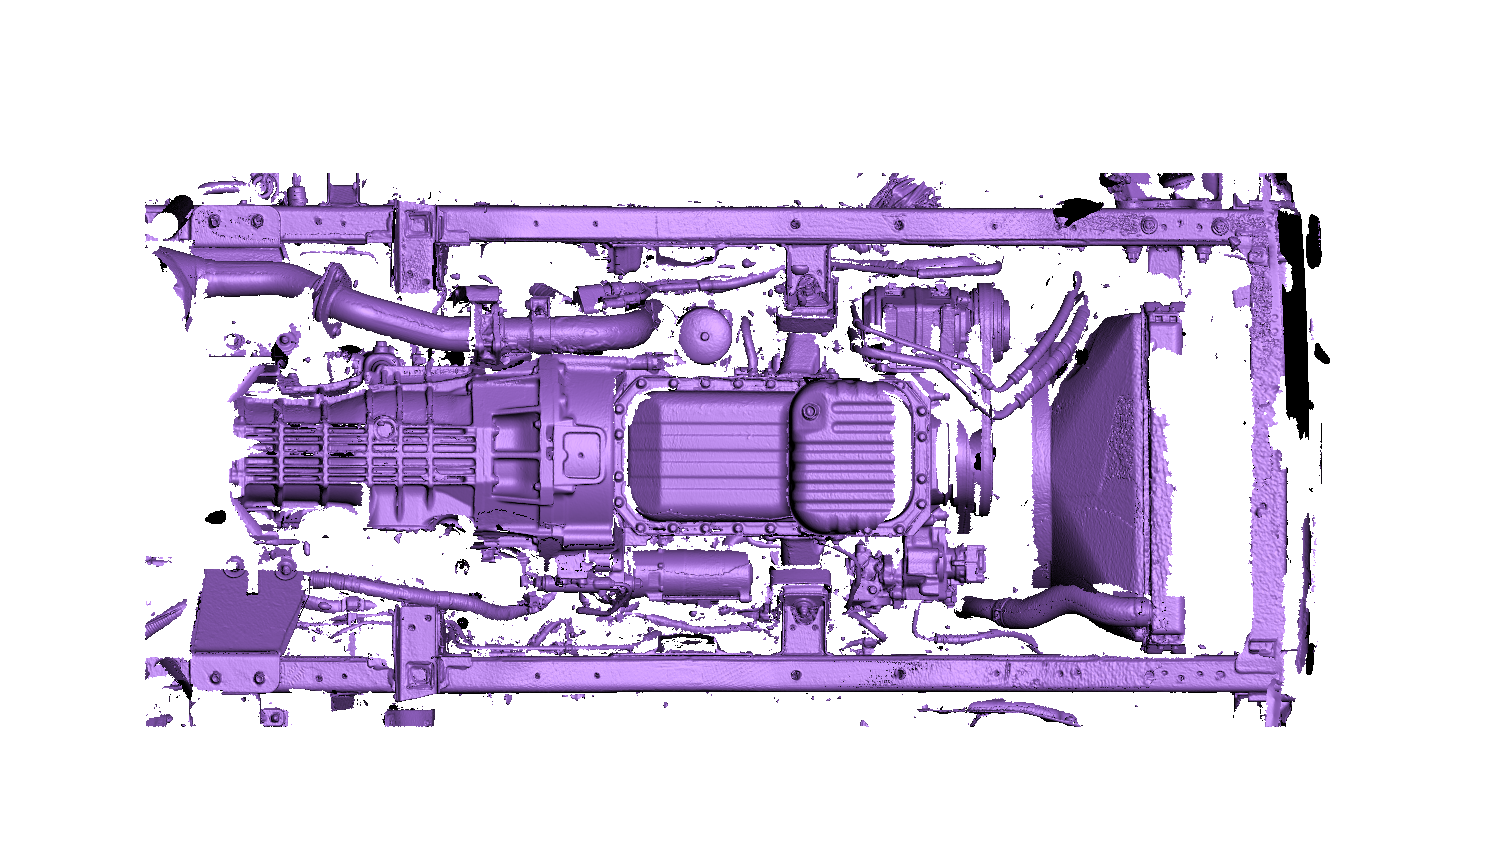 001_Simplified Chassis Bottom View.png